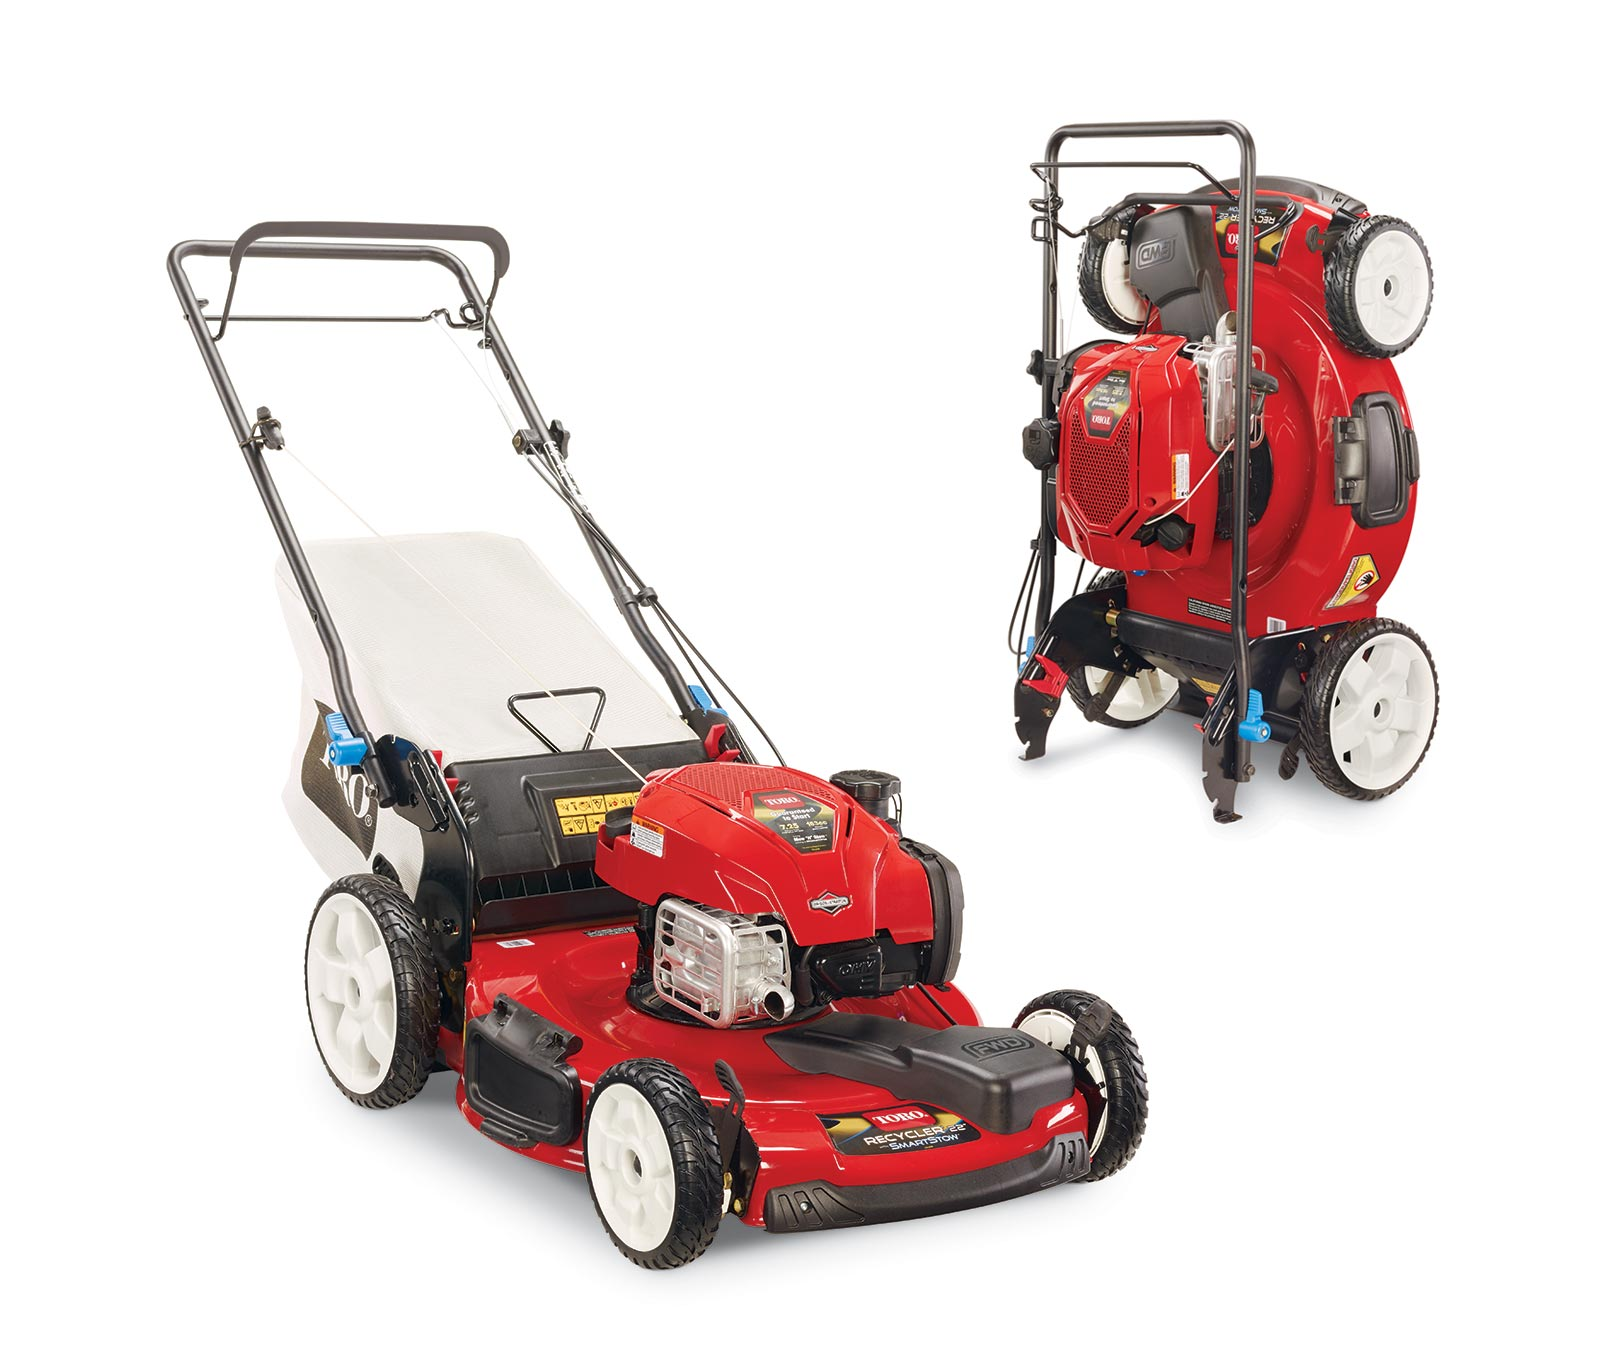 toro 22 56cm smartstow variable speed high wheel lawn mower rh toro com toro recycler 190cc manual pdf toro sr4 super recycler 190cc manual